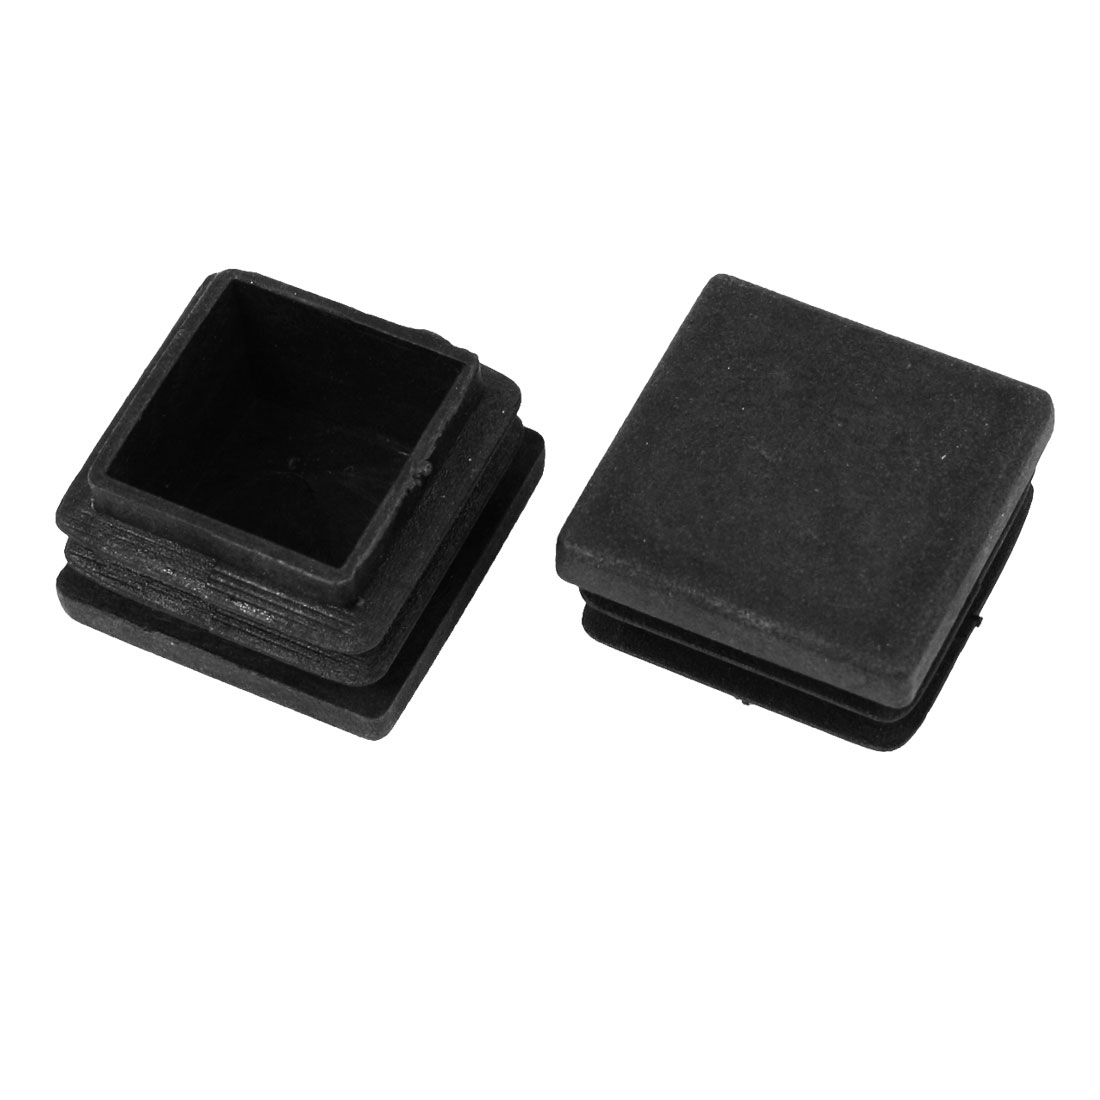 2 Pcs 28mm x 28mm Plastic Blanking End Caps Cover Square Tubing Tube Insert Black